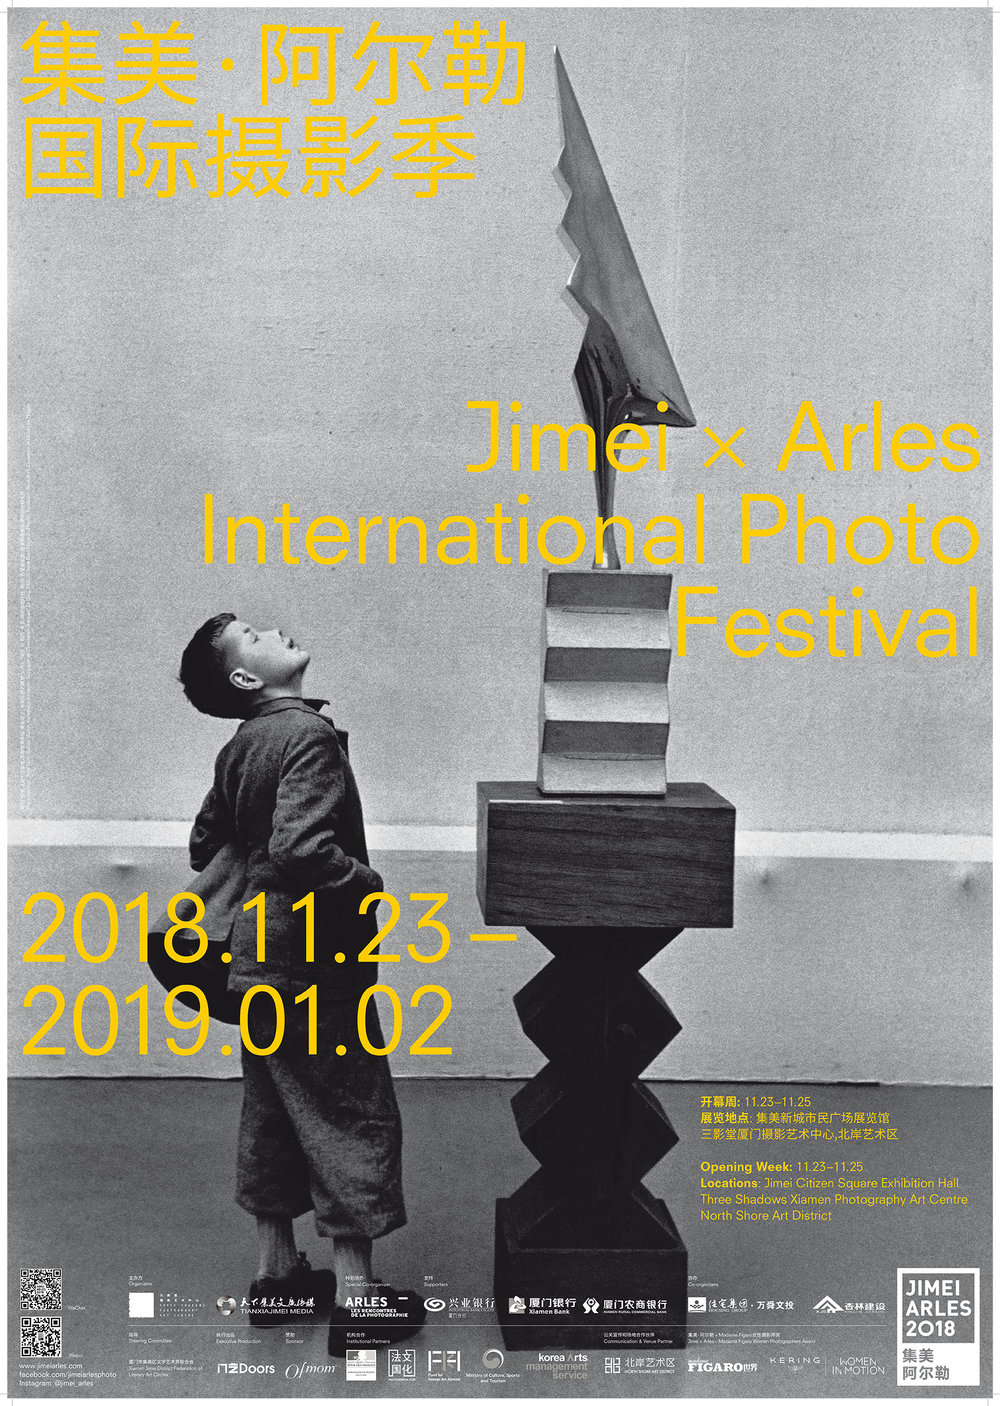 jimei-arles-2018-photography-of-china-1.jpg